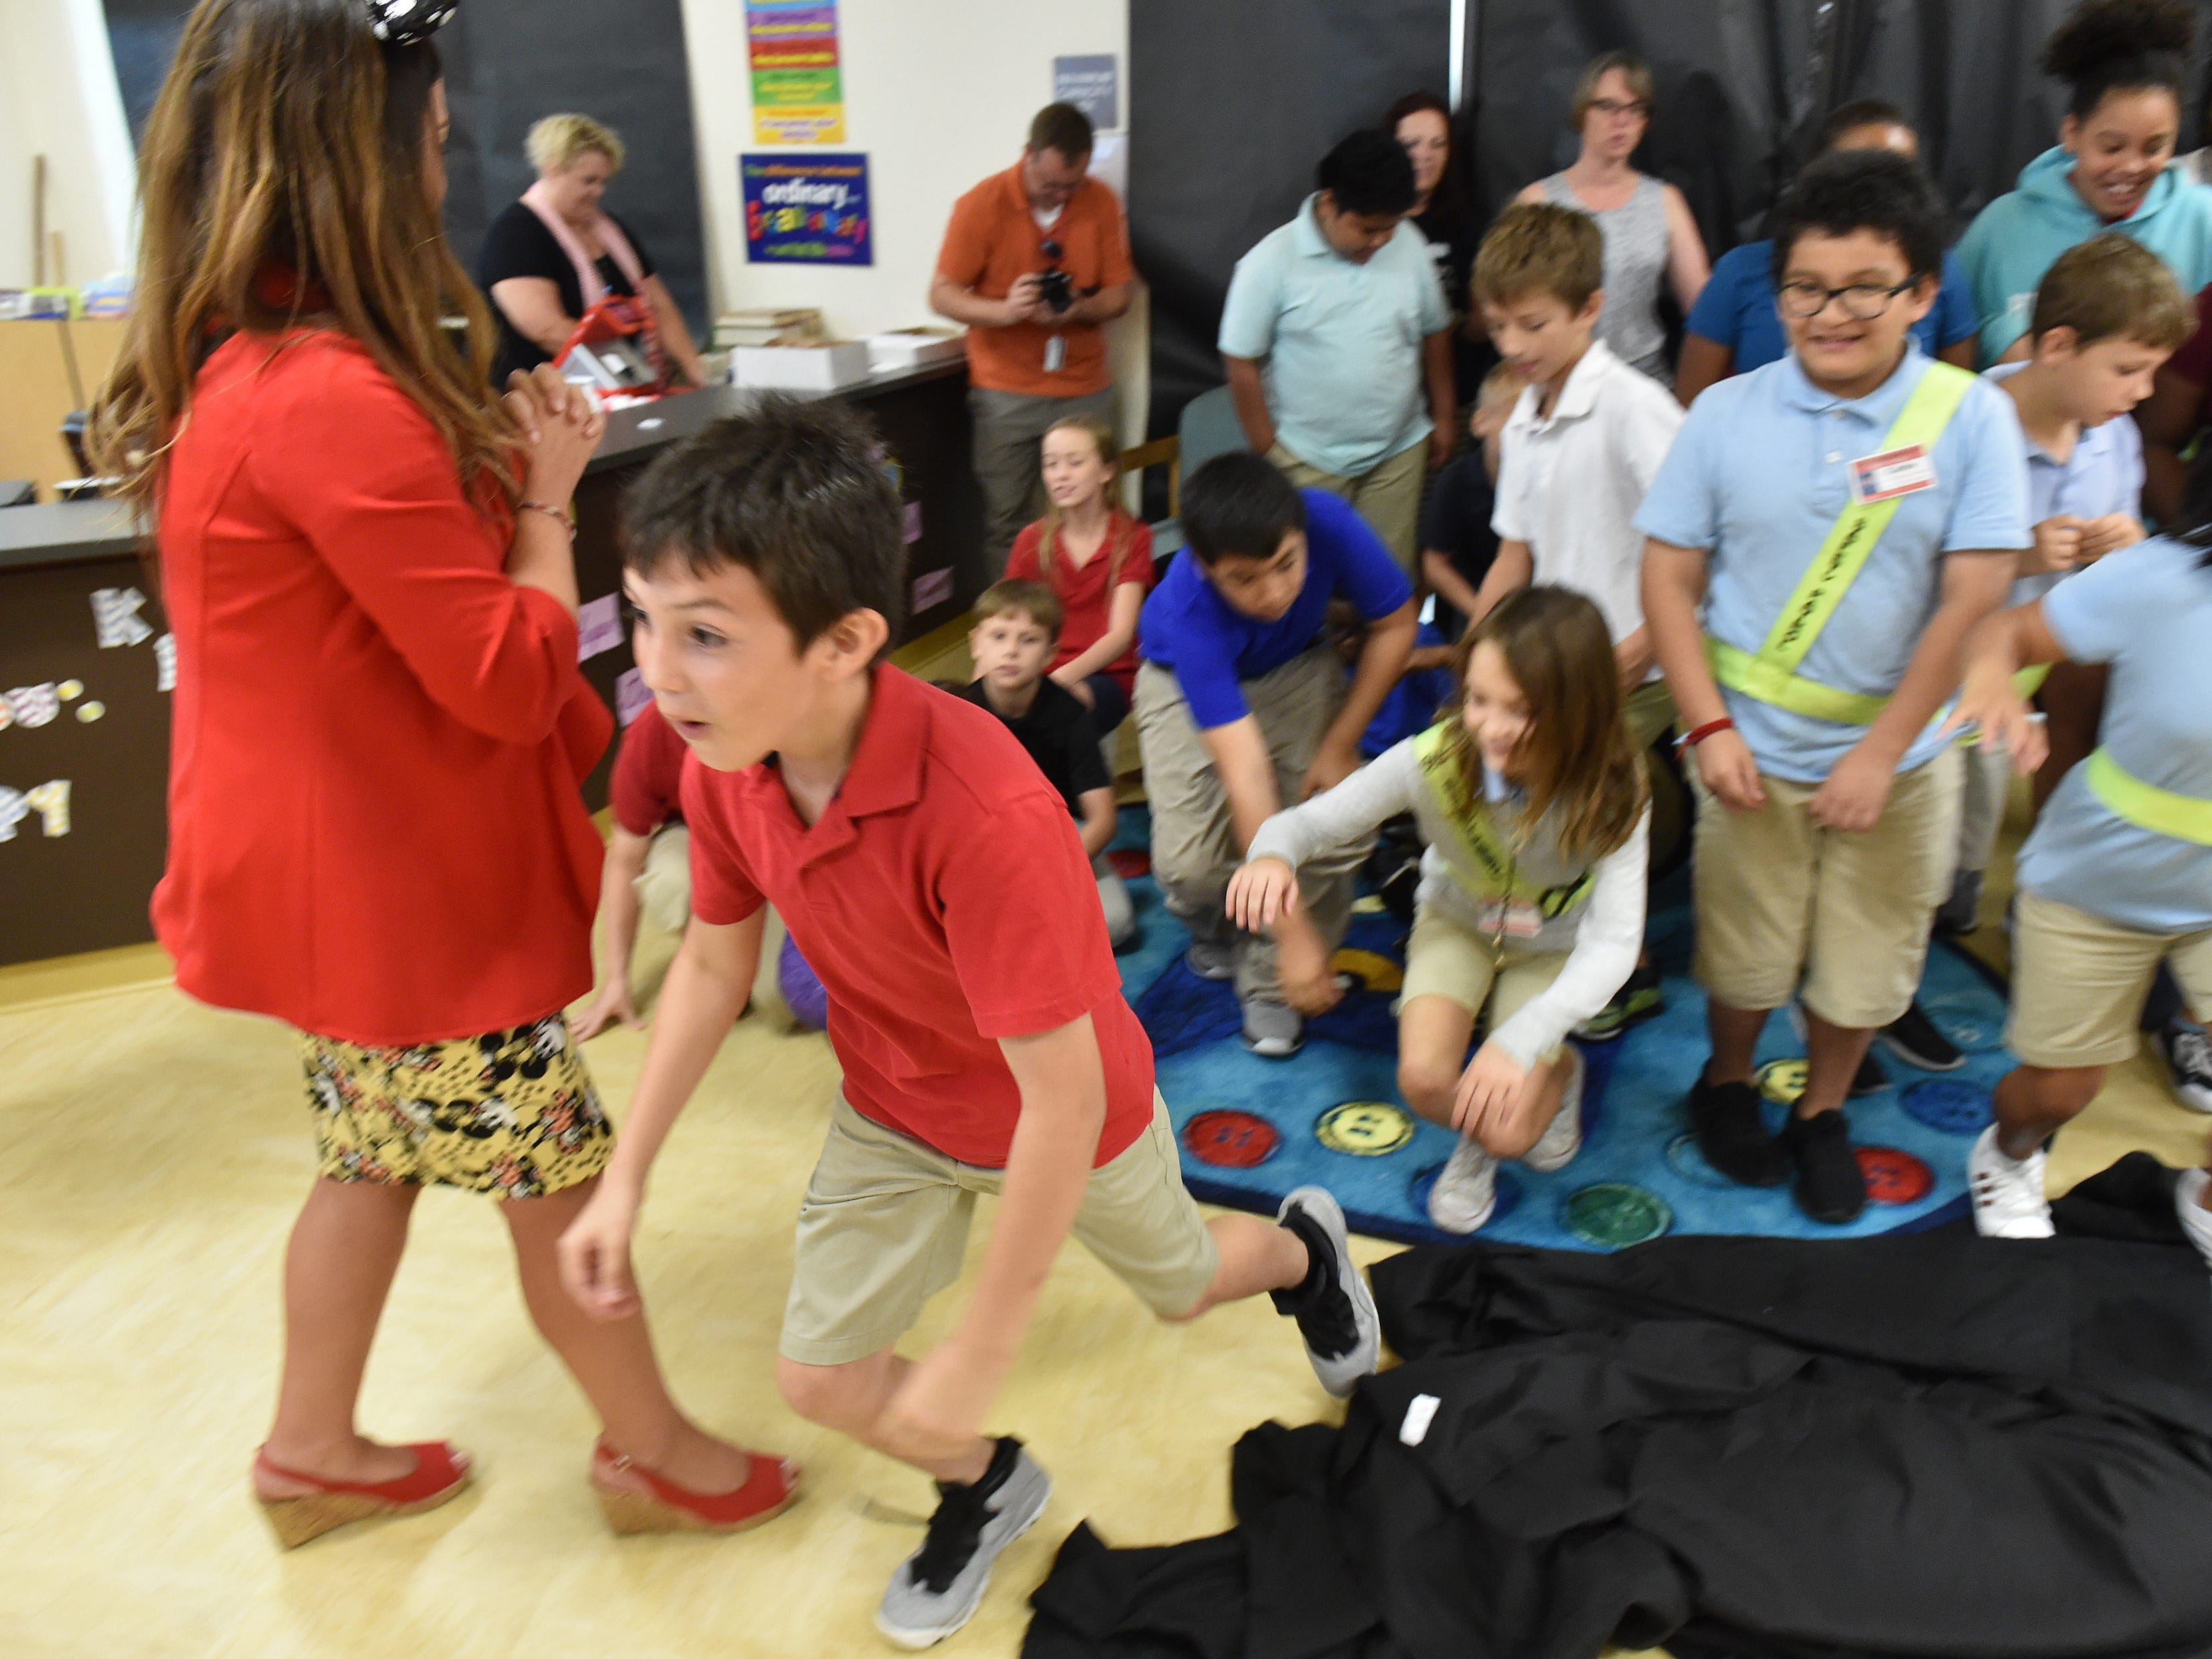 Students at Vero Beach Elementary get a surprise of a lifetime, selecting eleven new books of their choice to keep on Monday, Oct. 1, 2018, in the school's media center.